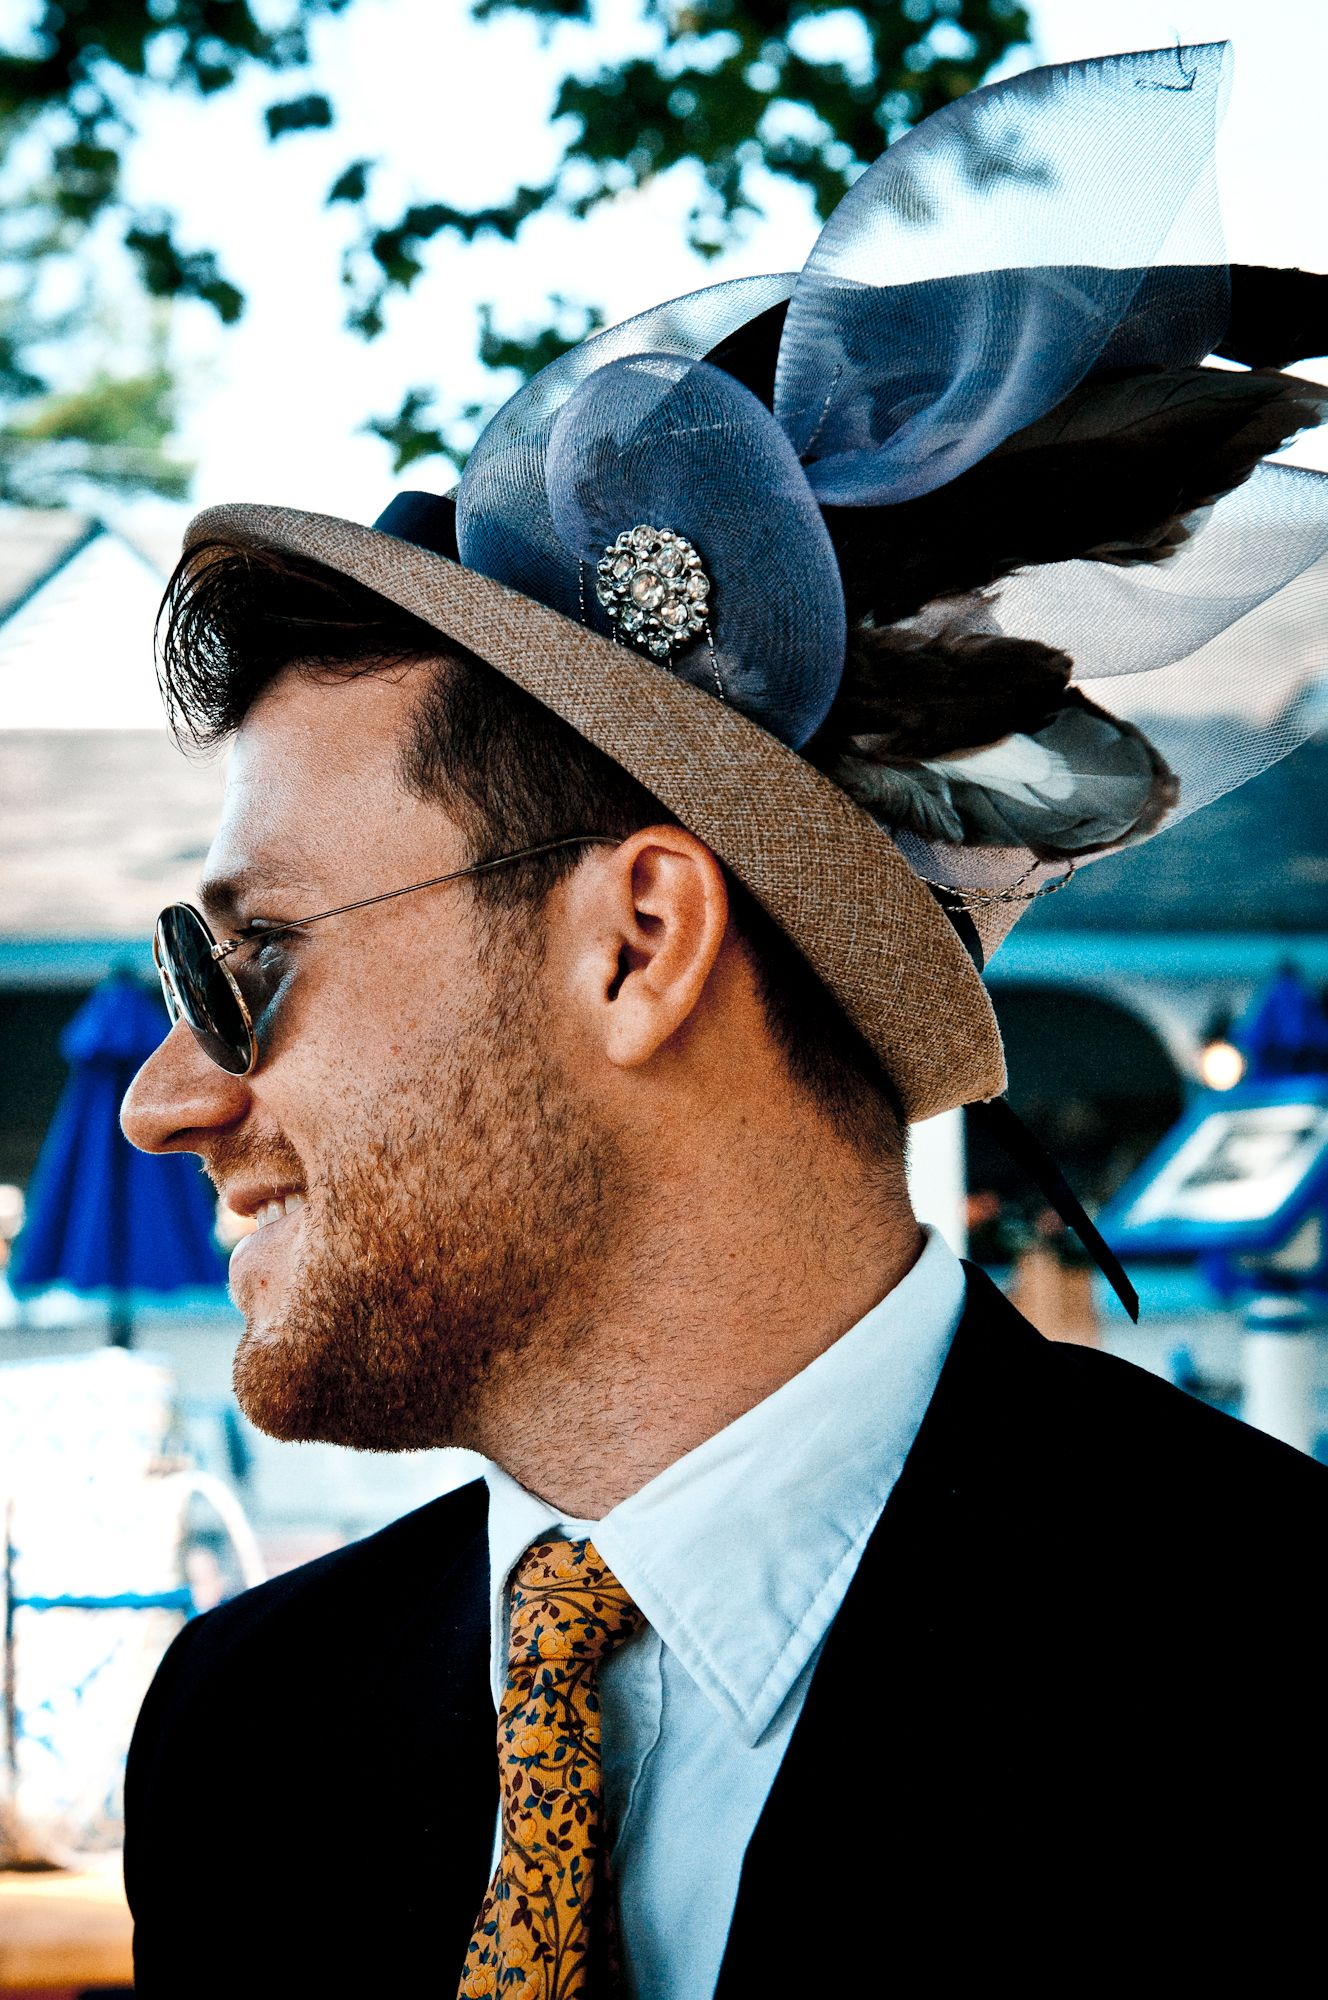 e941e8711 Pin by Deirdre Kavanagh on redwall costumes | Hats, Panama hat ...